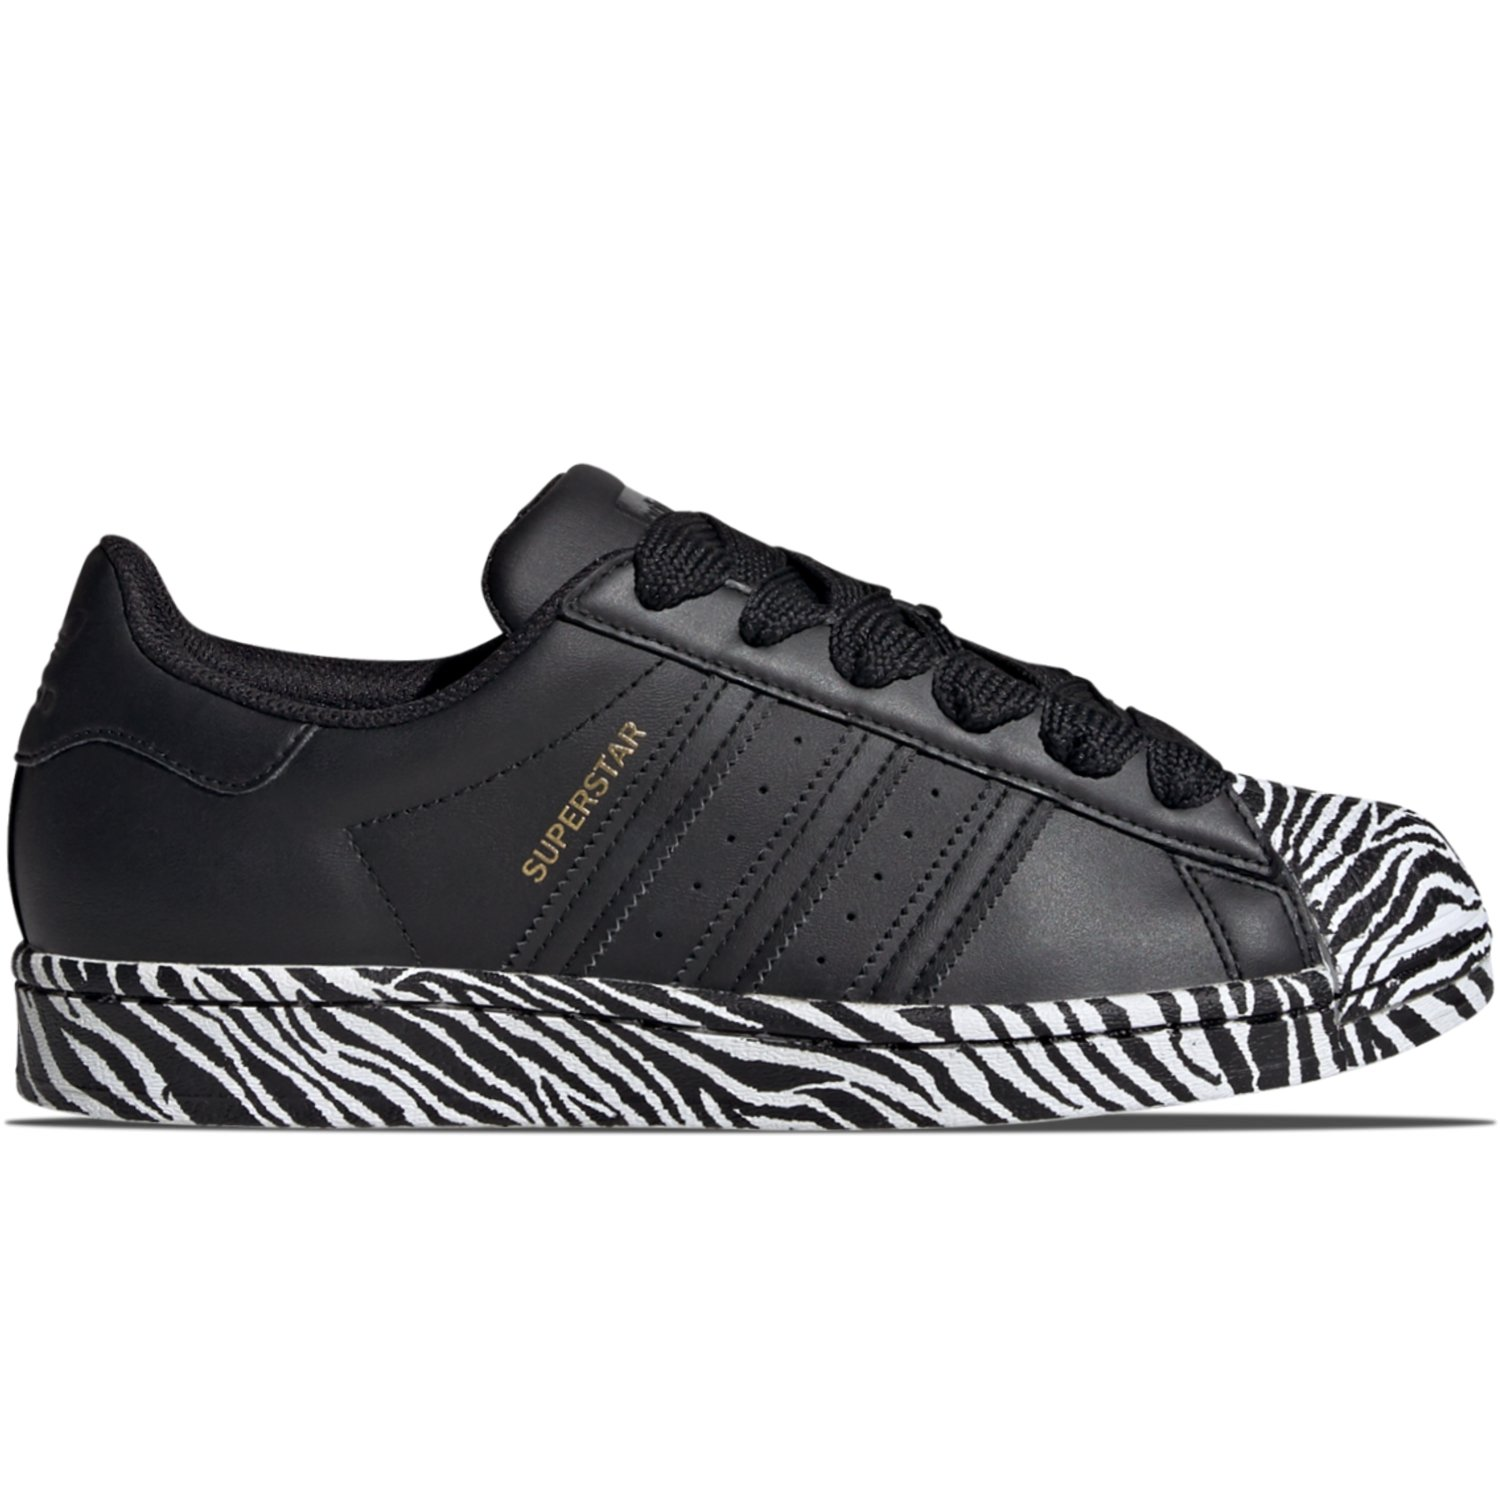 adidasy superstar damskie